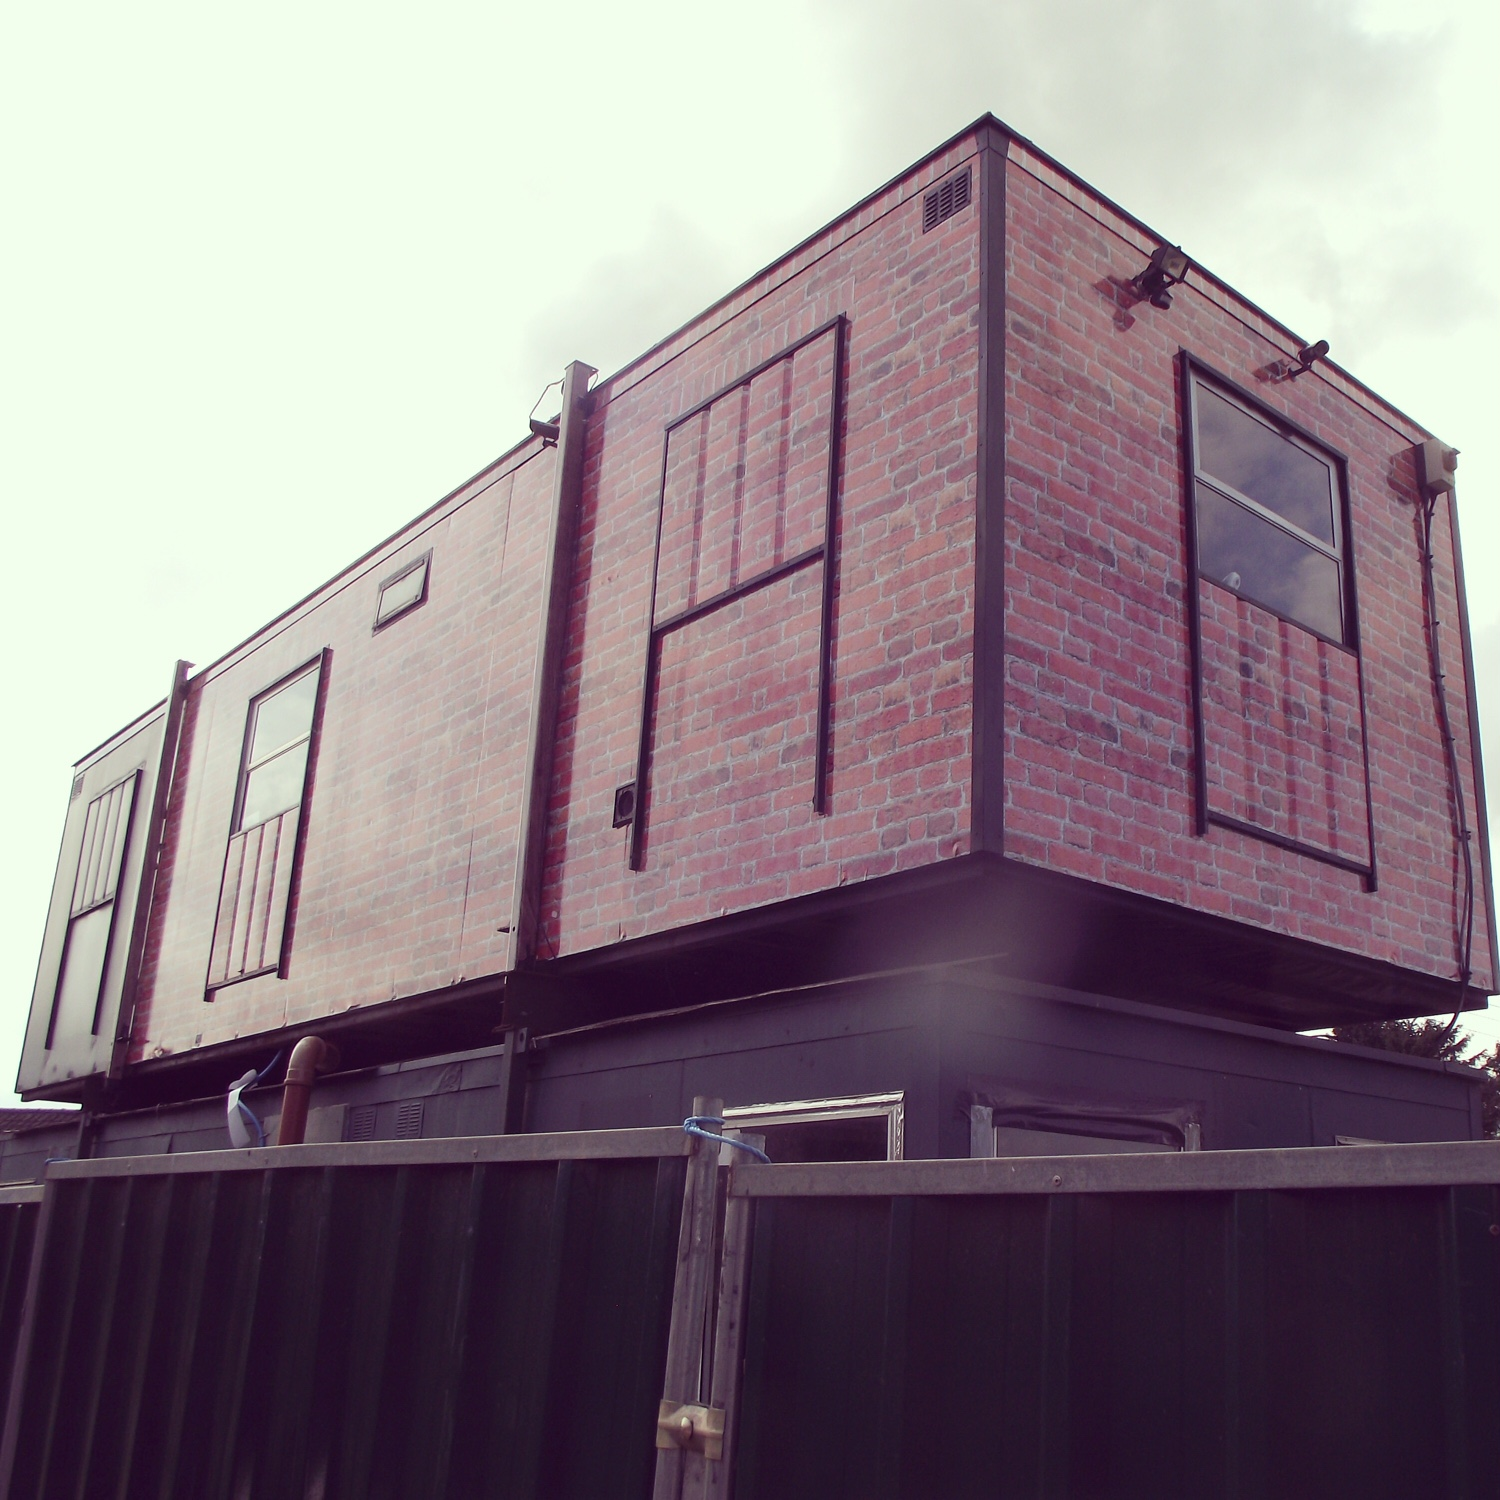 portacabin wrapped